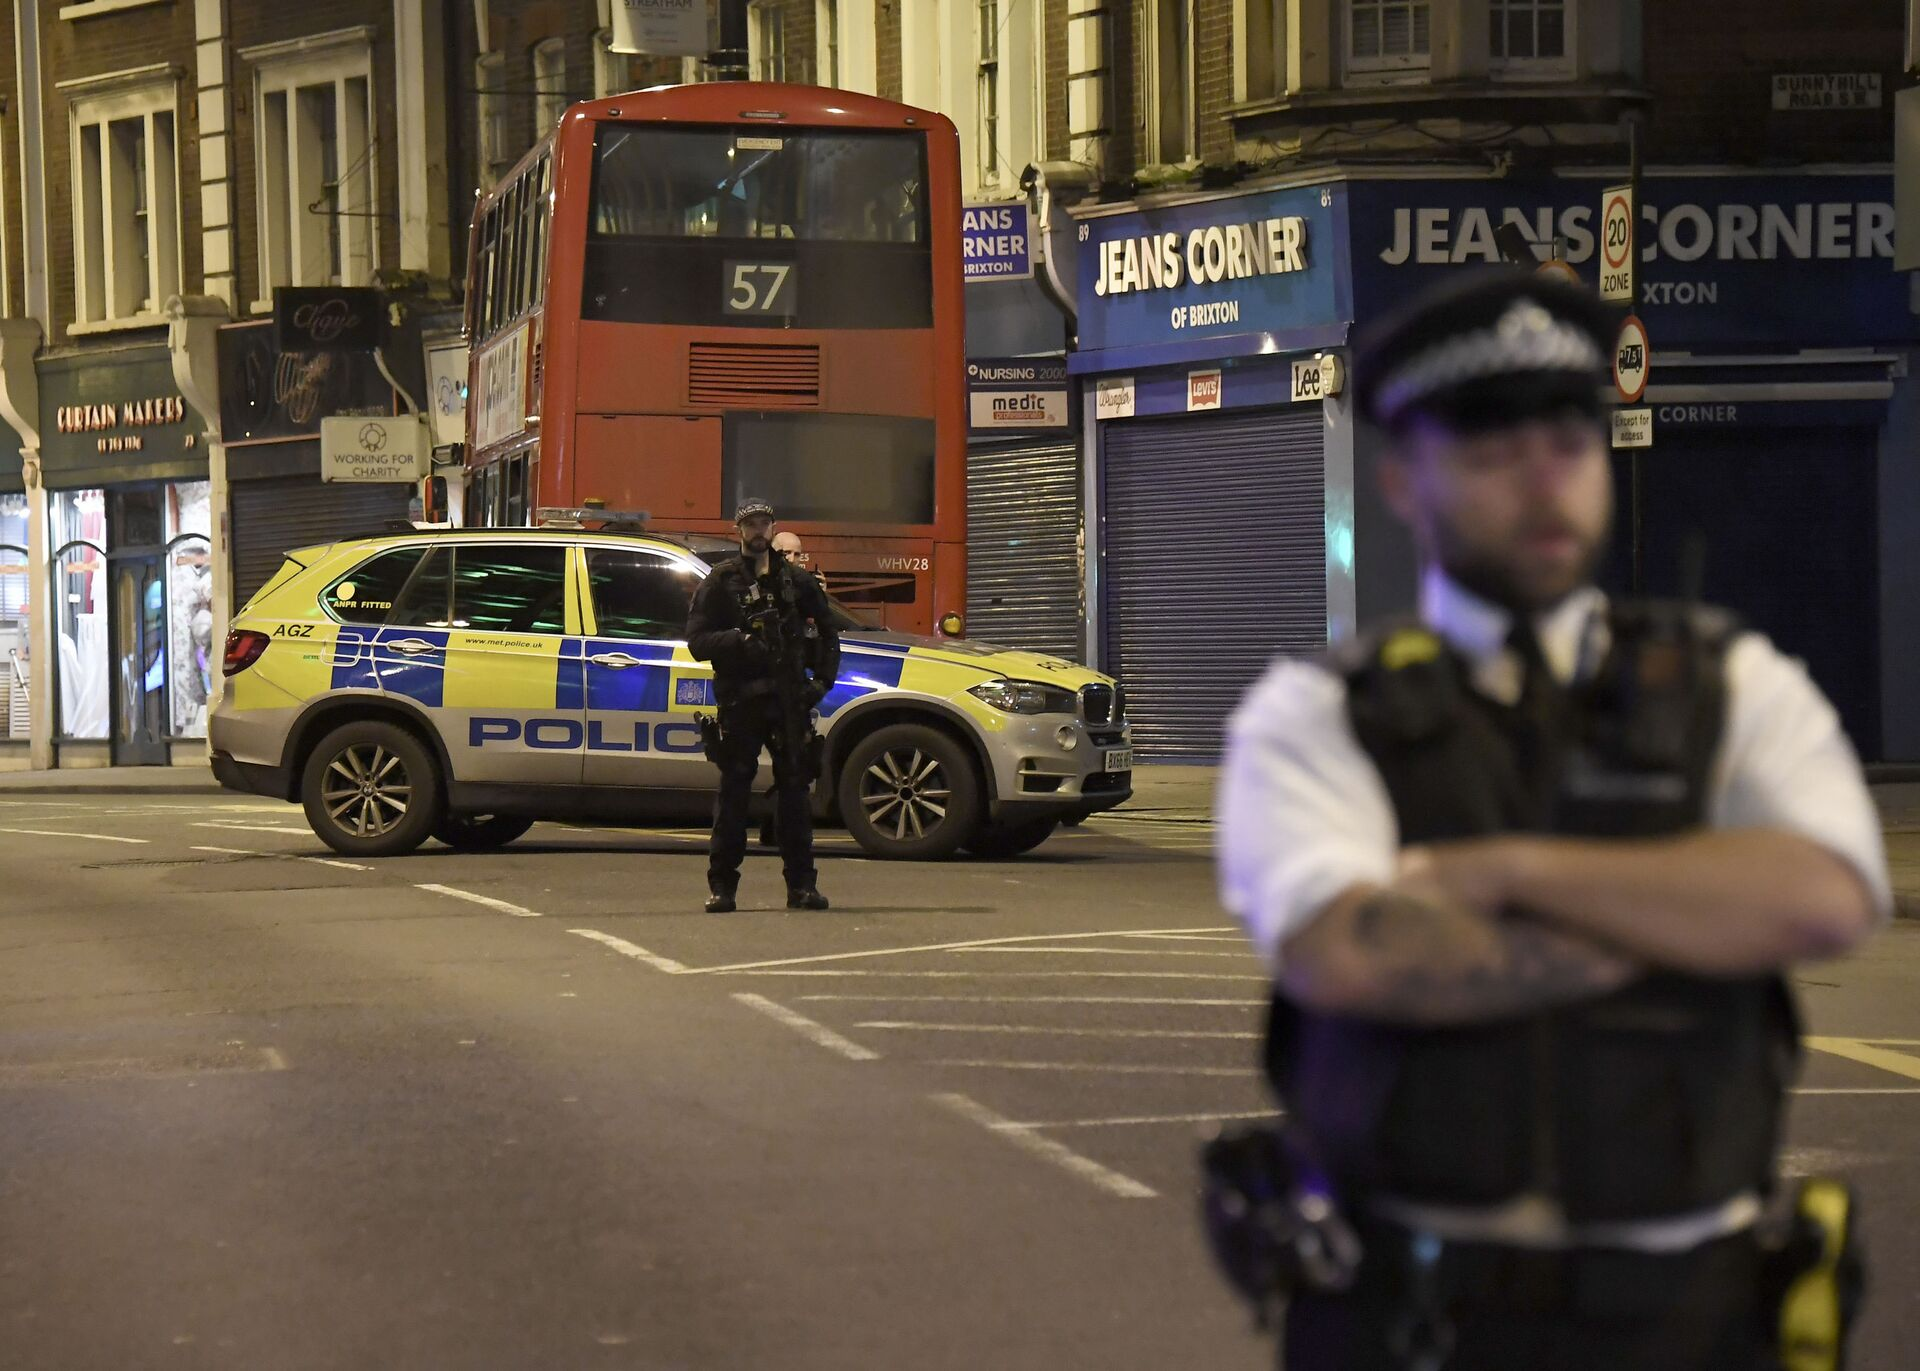 A police officer stands guard near the scene after a stabbing incident in Streatham London, England, Sunday, Feb. 2, 2020 - Sputnik International, 1920, 07.09.2021